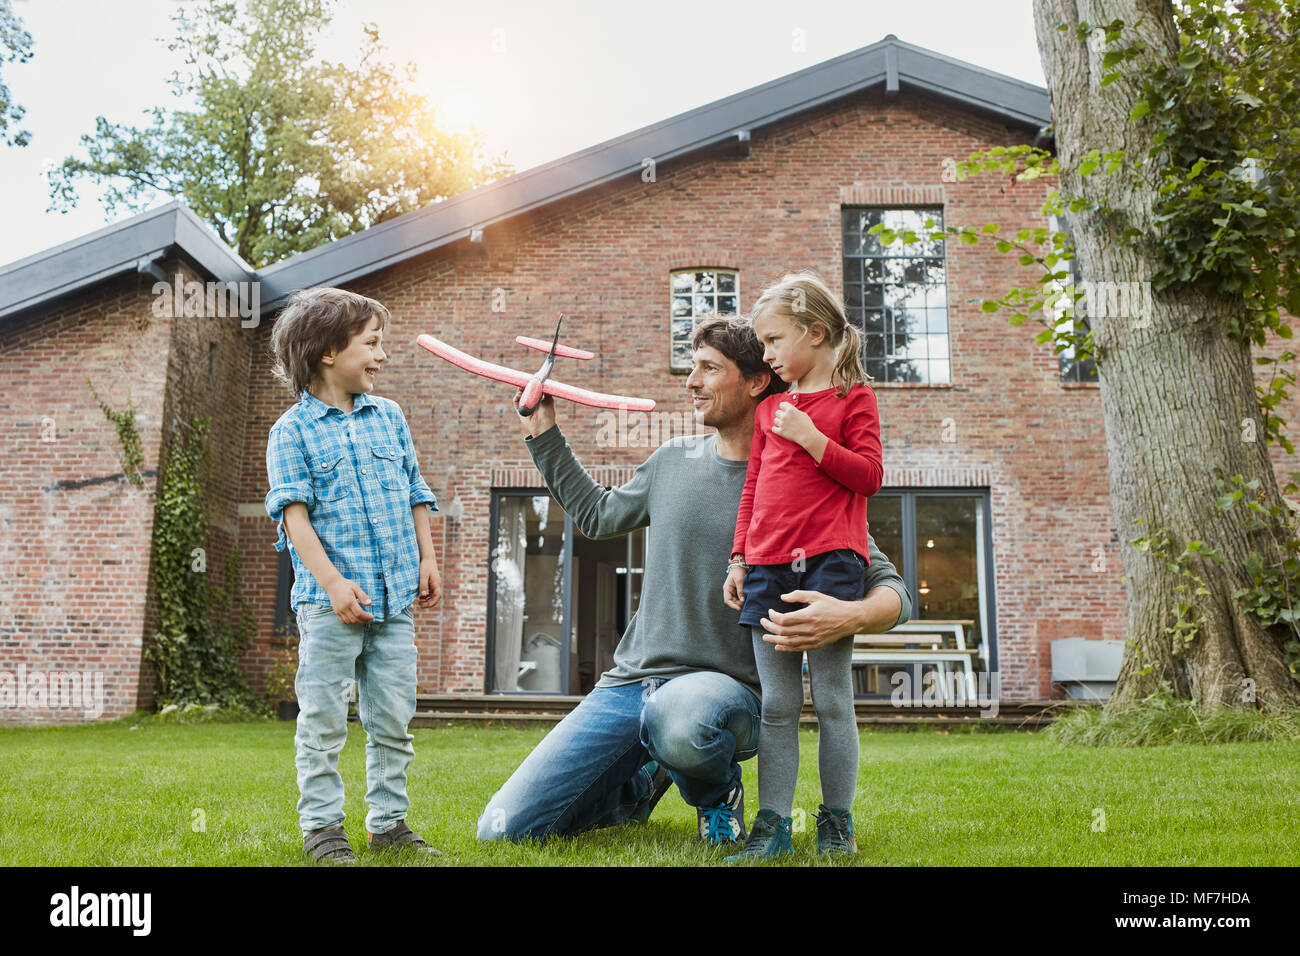 Father with two children playing with toy airplane in garden of their home - Stock Image